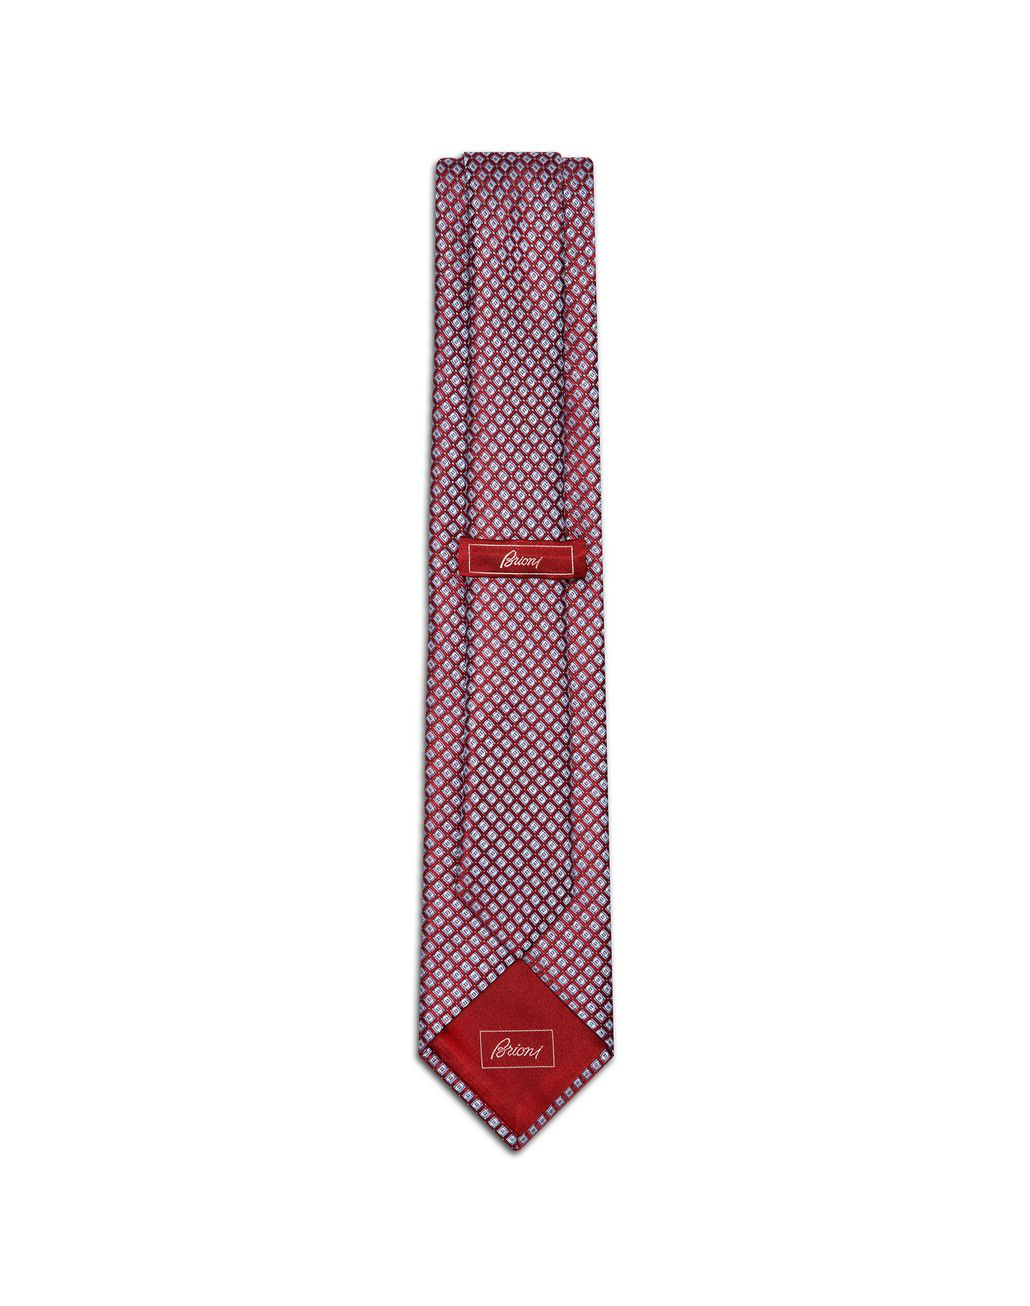 BRIONI Cravate rouge et bleu ciel à motif Cravate [*** pickupInStoreShippingNotGuaranteed_info ***] r